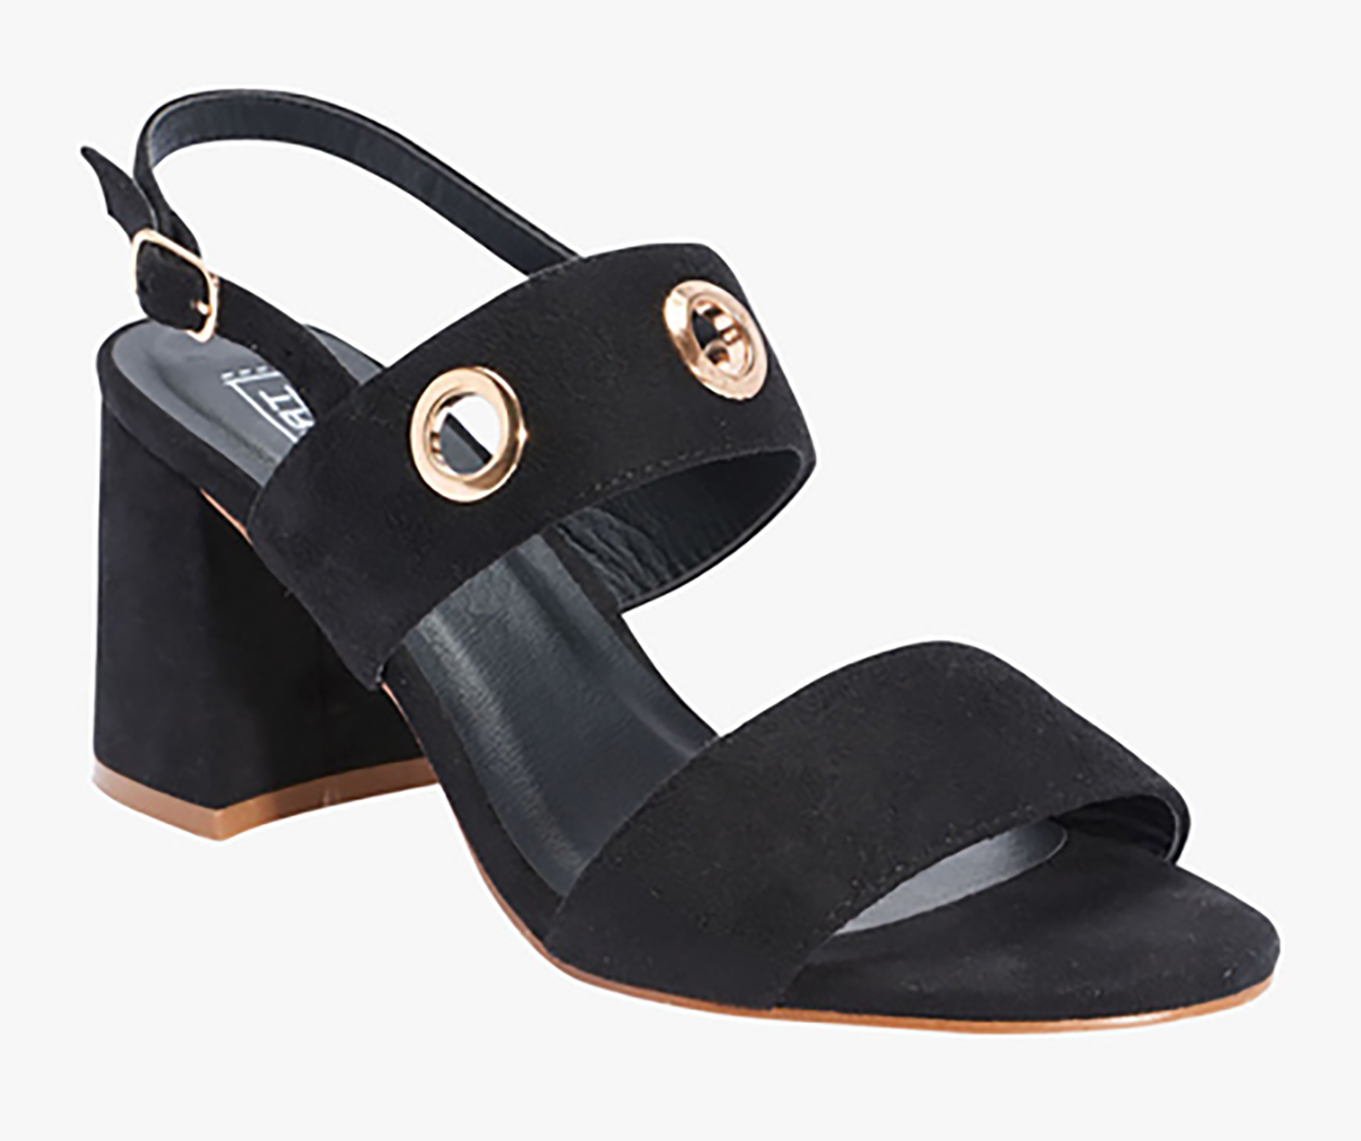 Truffle-Collection-Black-Sandals-9230-6330932-1-pdp_slider_l